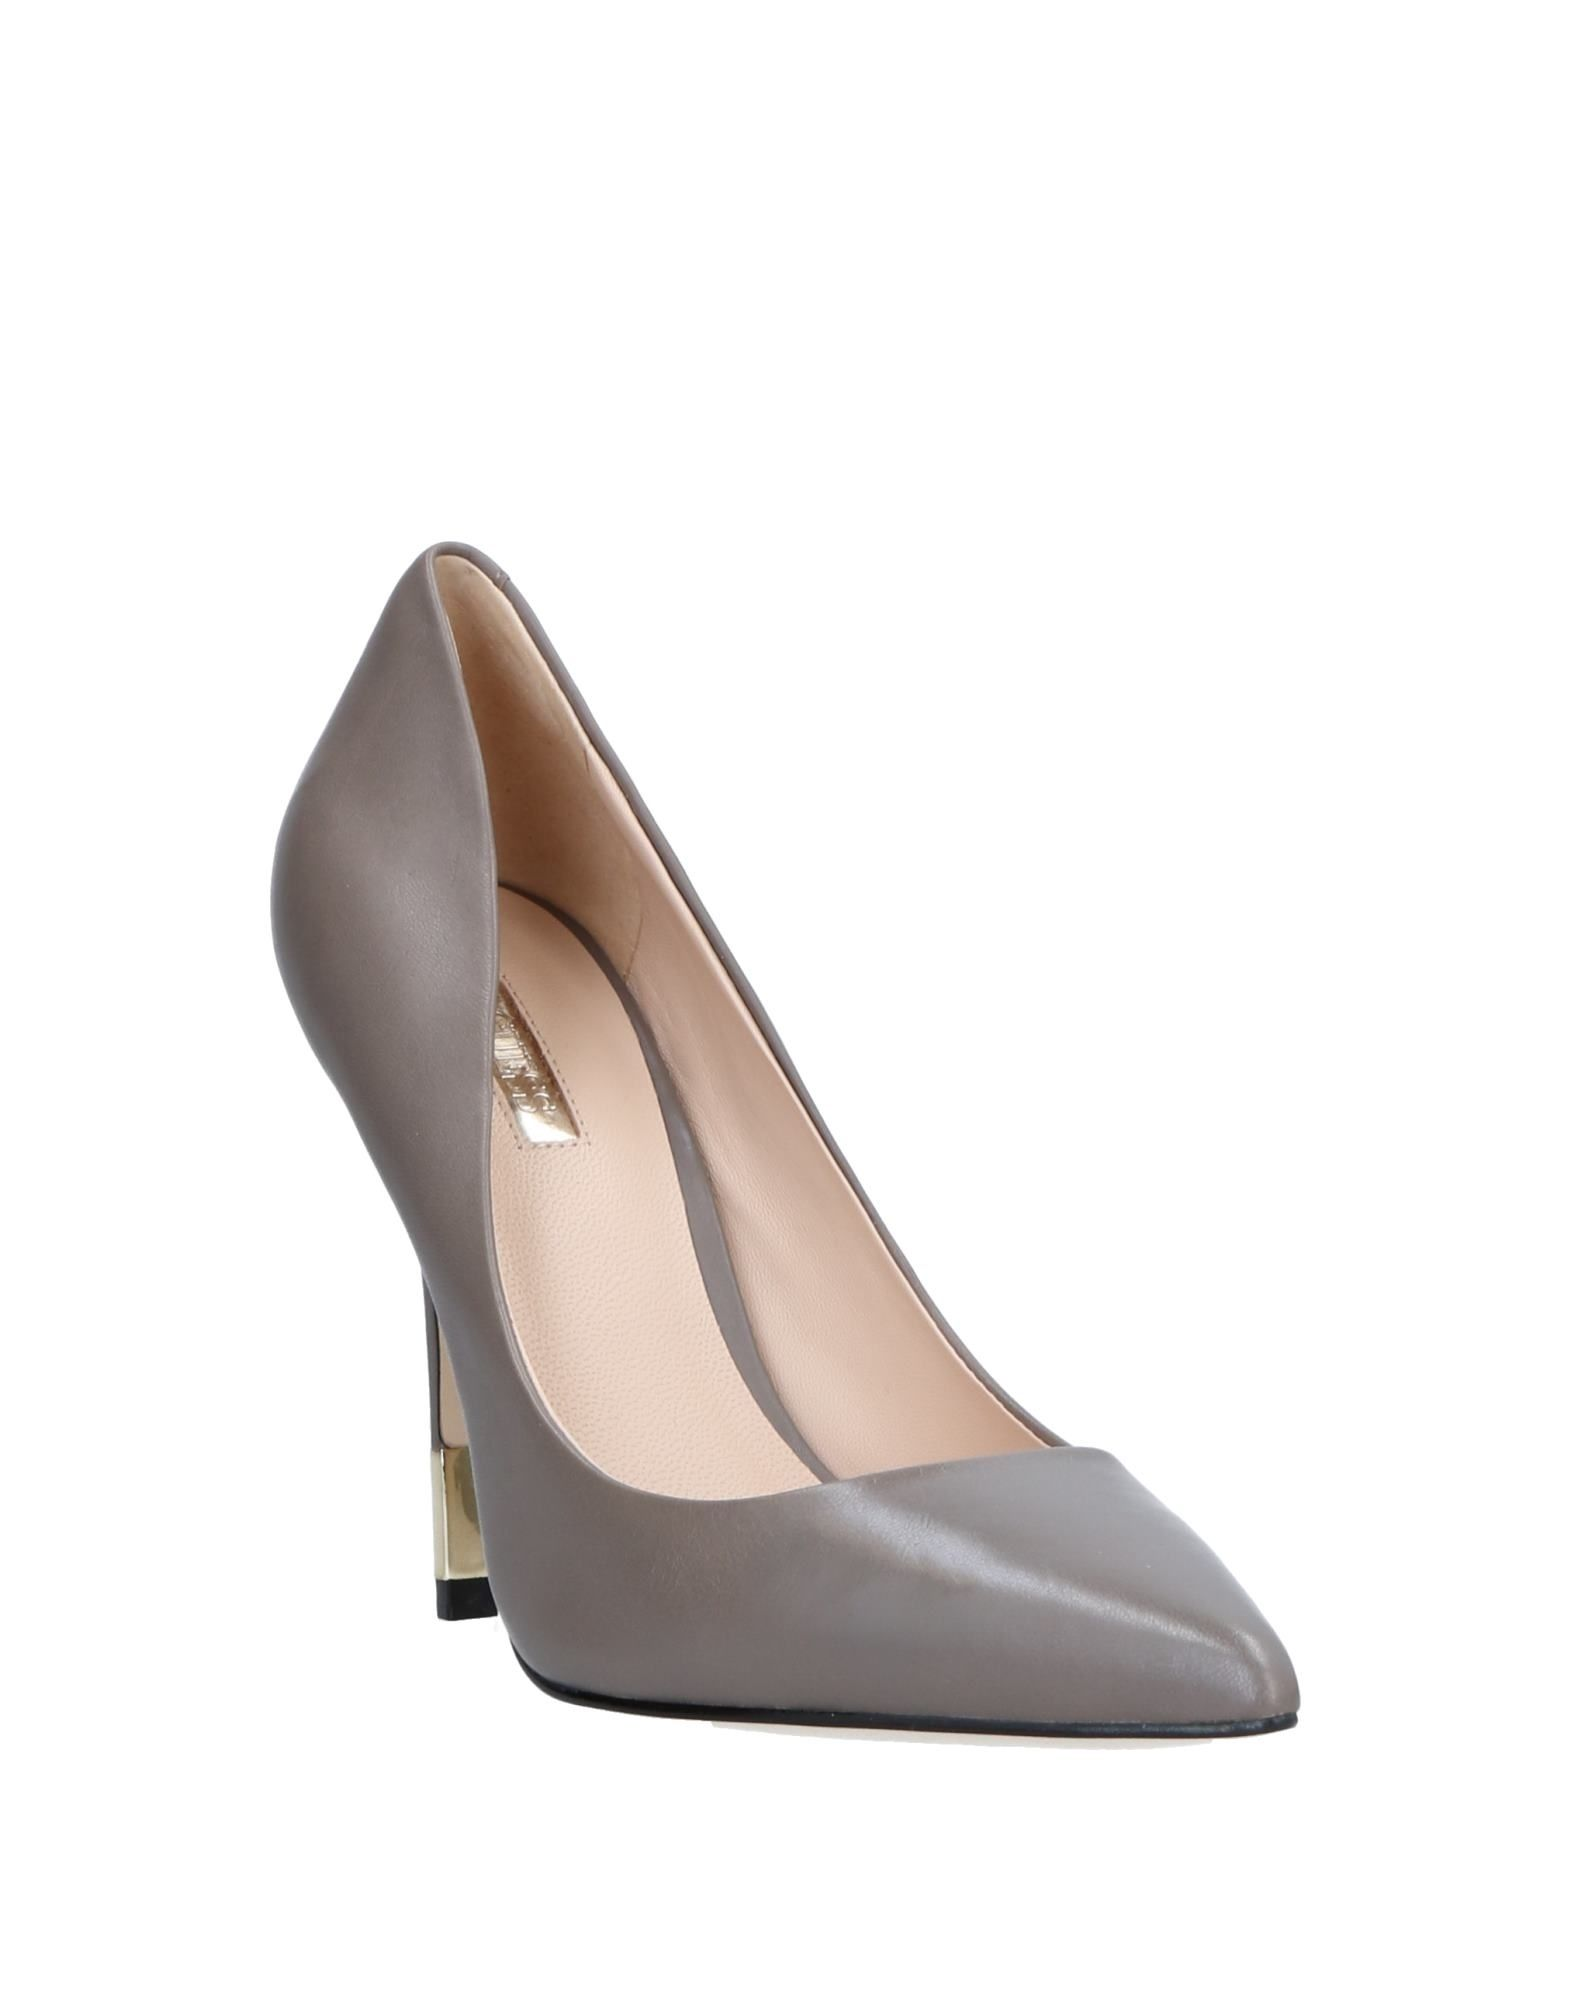 Guess Pumps Damen Damen Pumps  11067079DW  c0f8b6